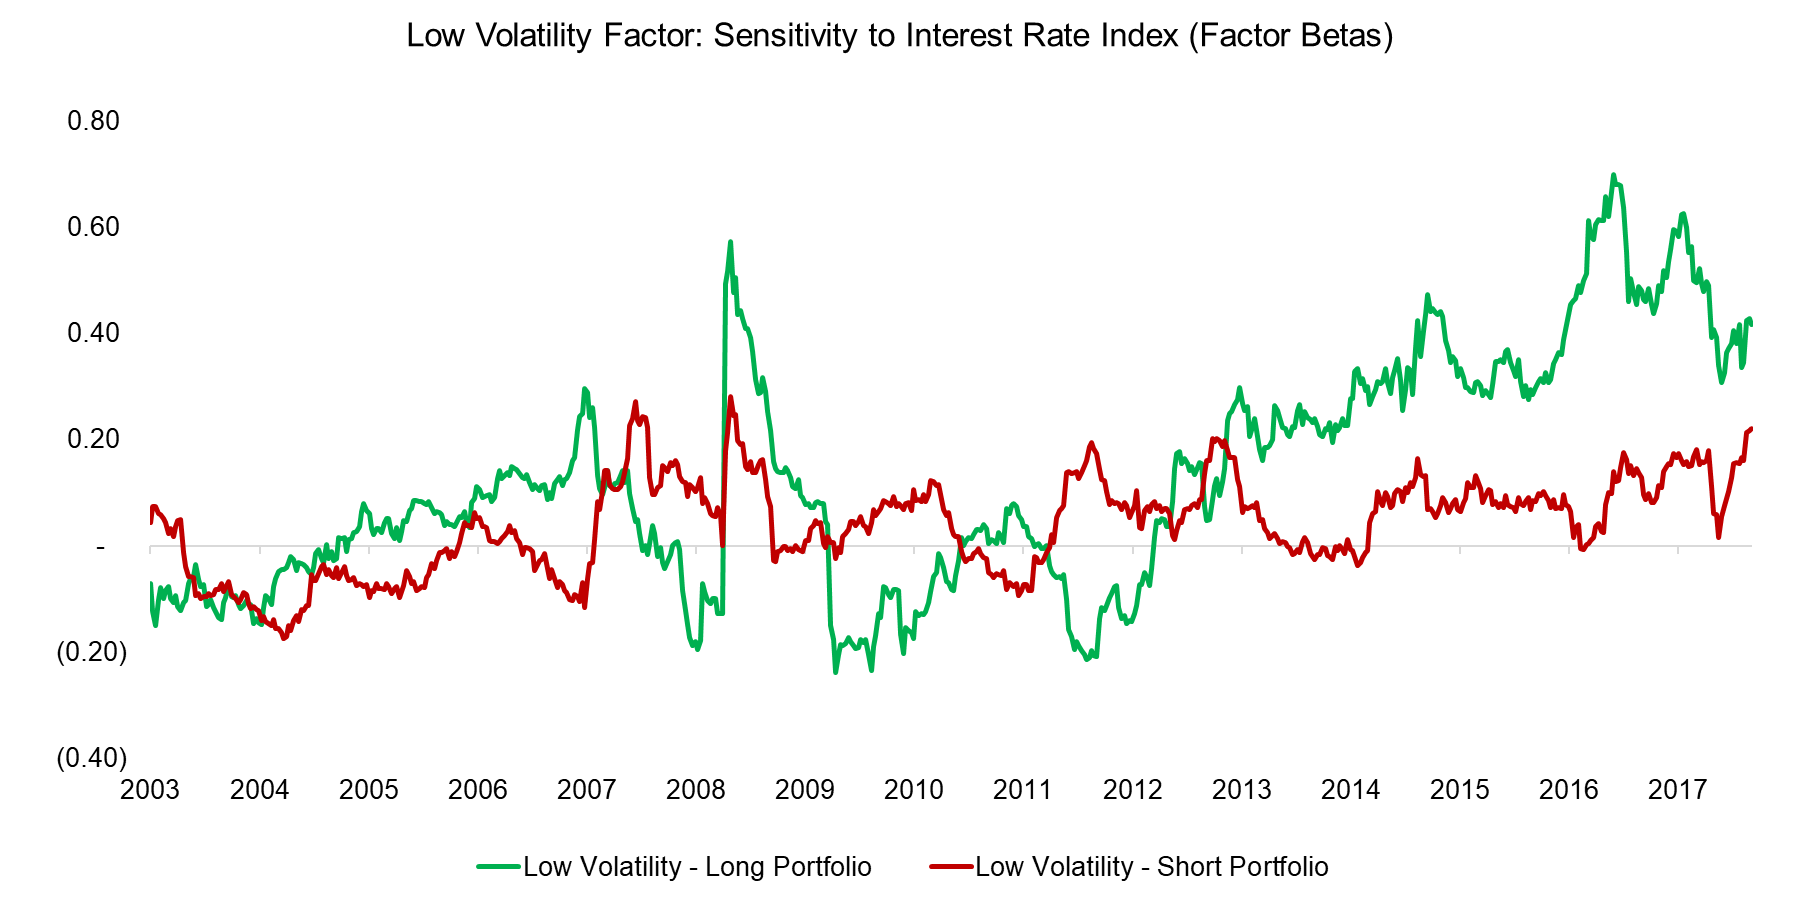 Low Volatility Factor